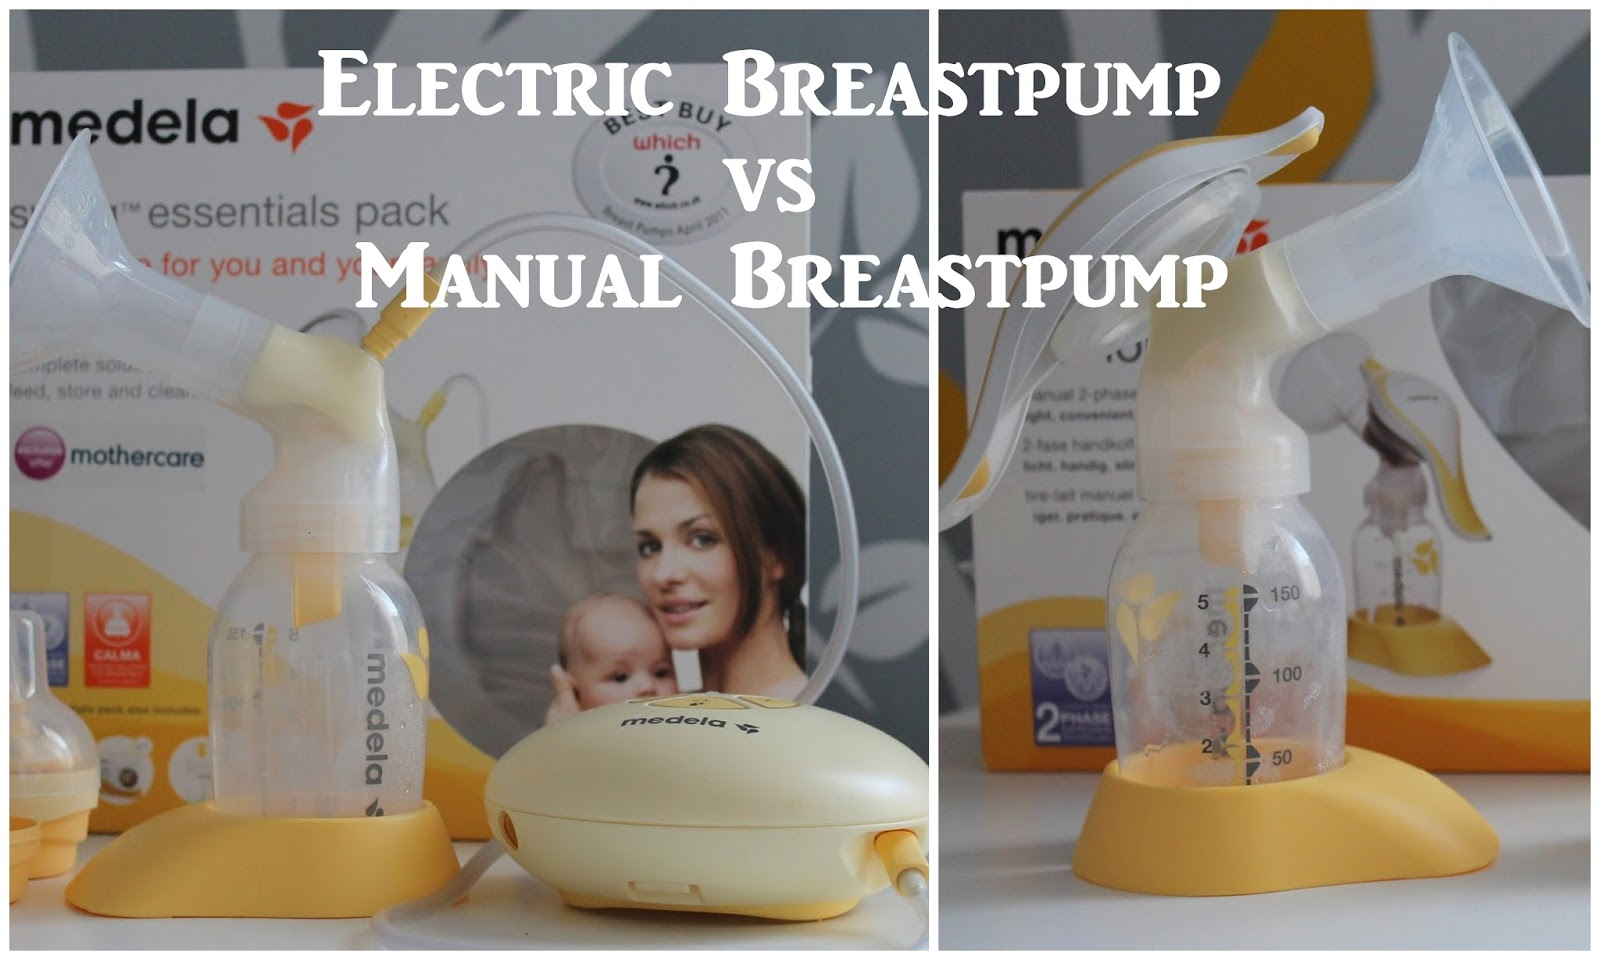 Electric Breastpump or Manual Breastpump